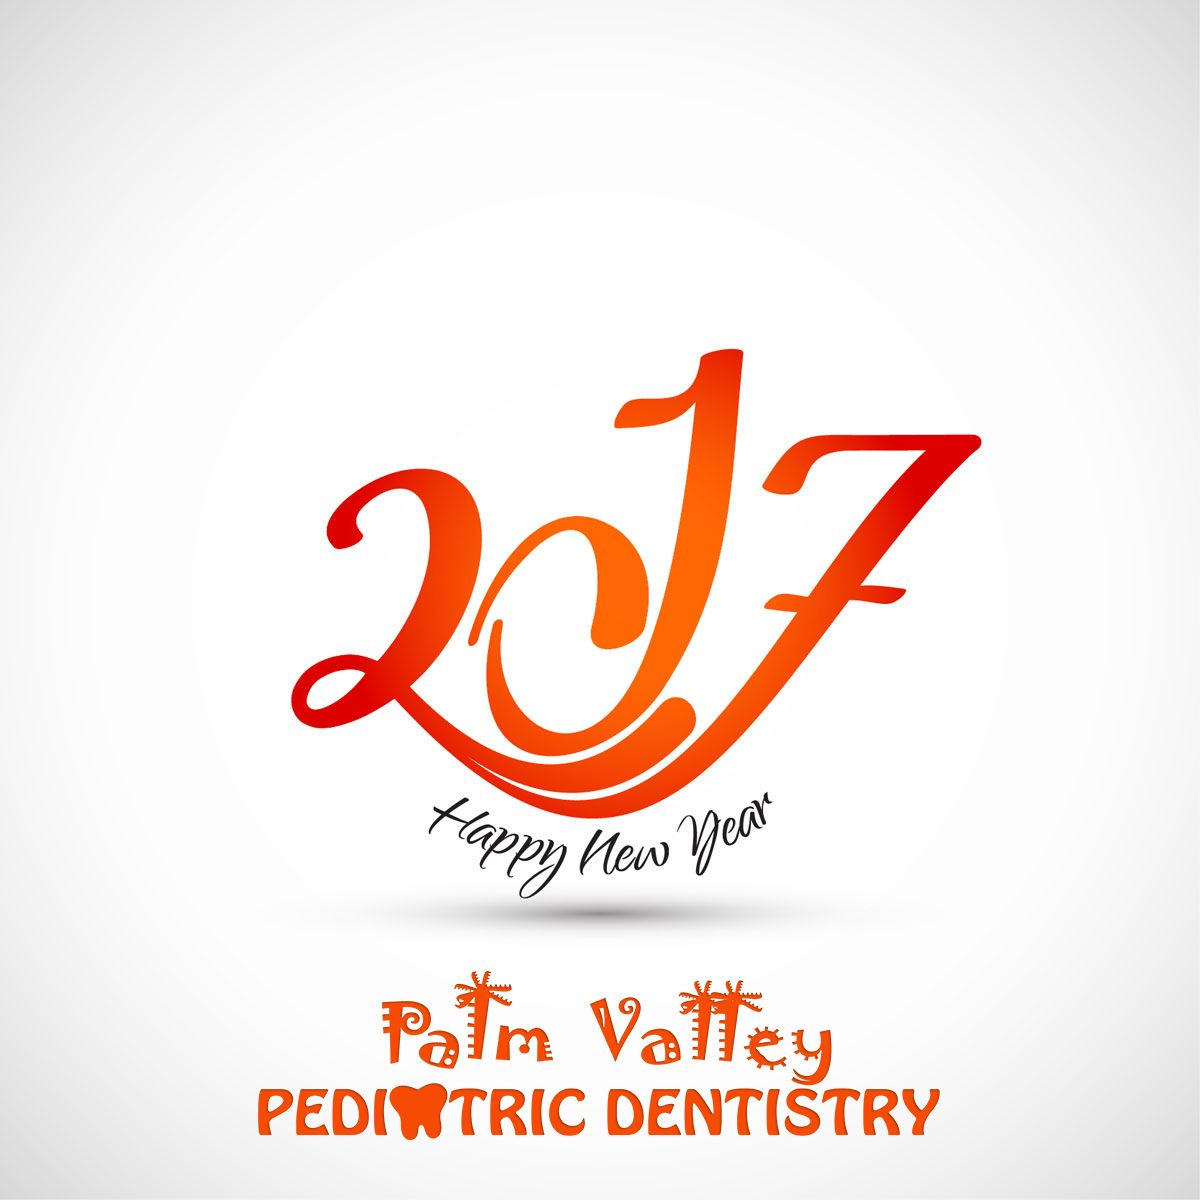 Pin by palm valley pediatric dentistry orthodontics on